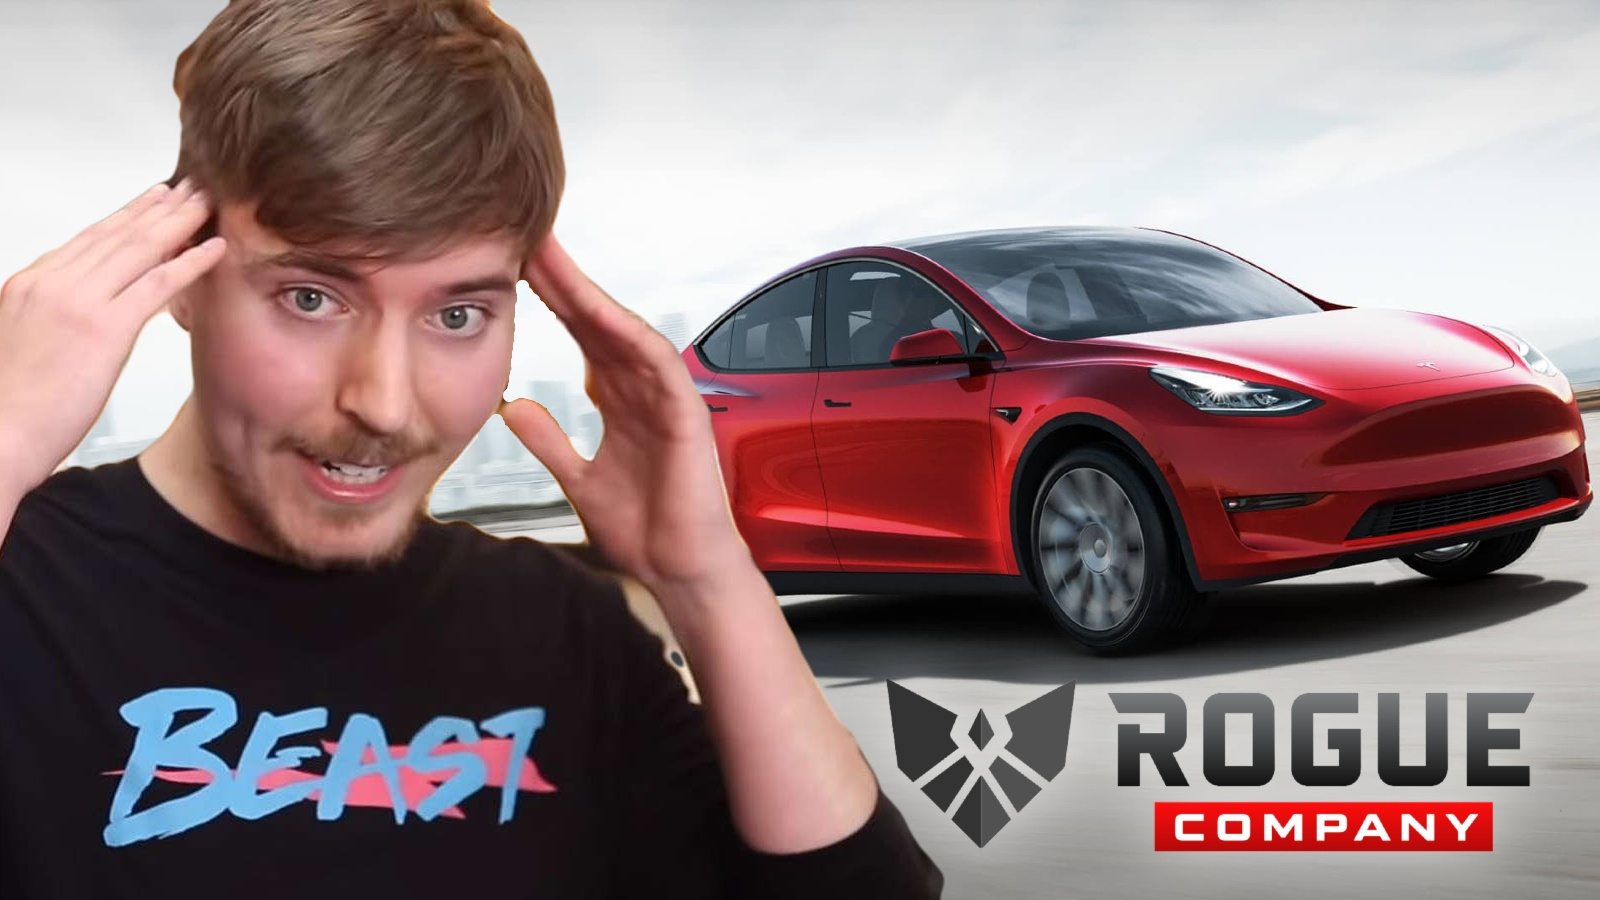 Mr Beast gives away free Tesla for Rogue Company wins